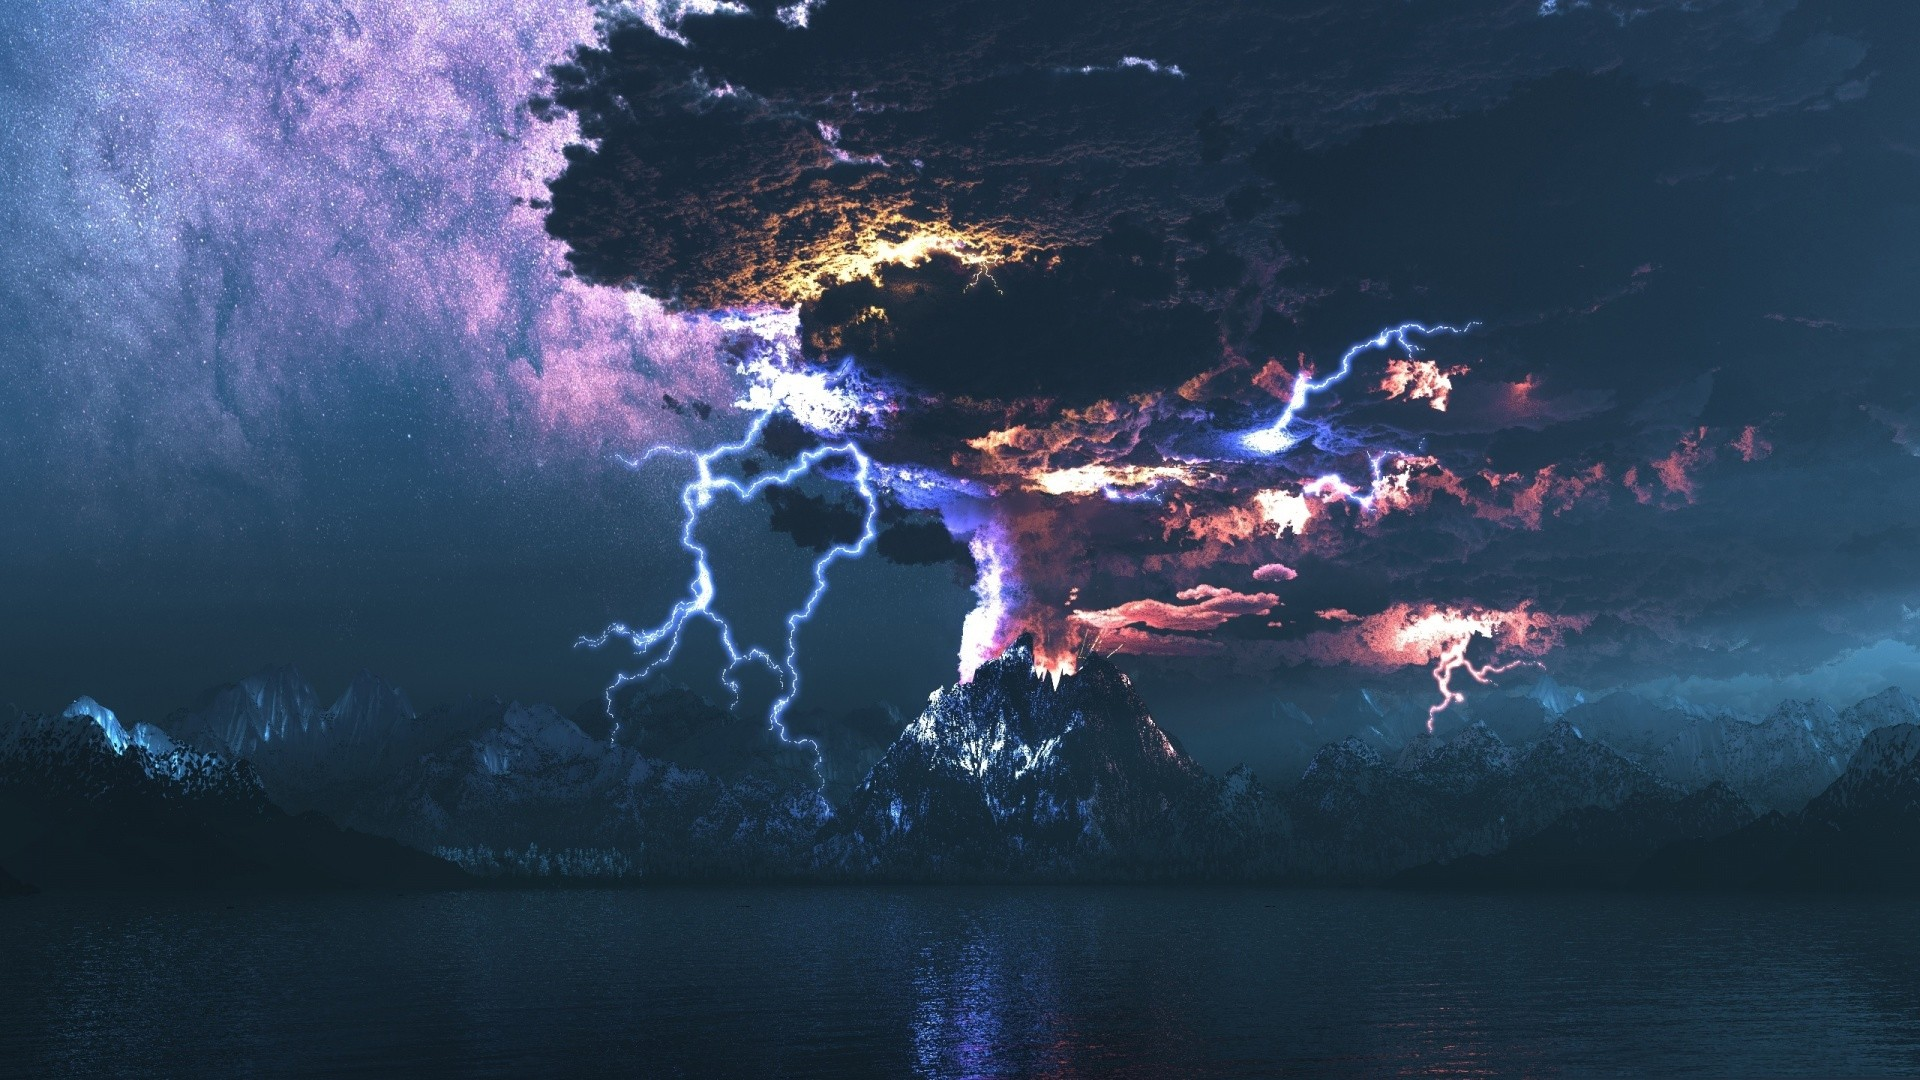 Lightning HD Wallpaper FullHDWpp   Full HD Wallpapers 1920x1080 1920x1080